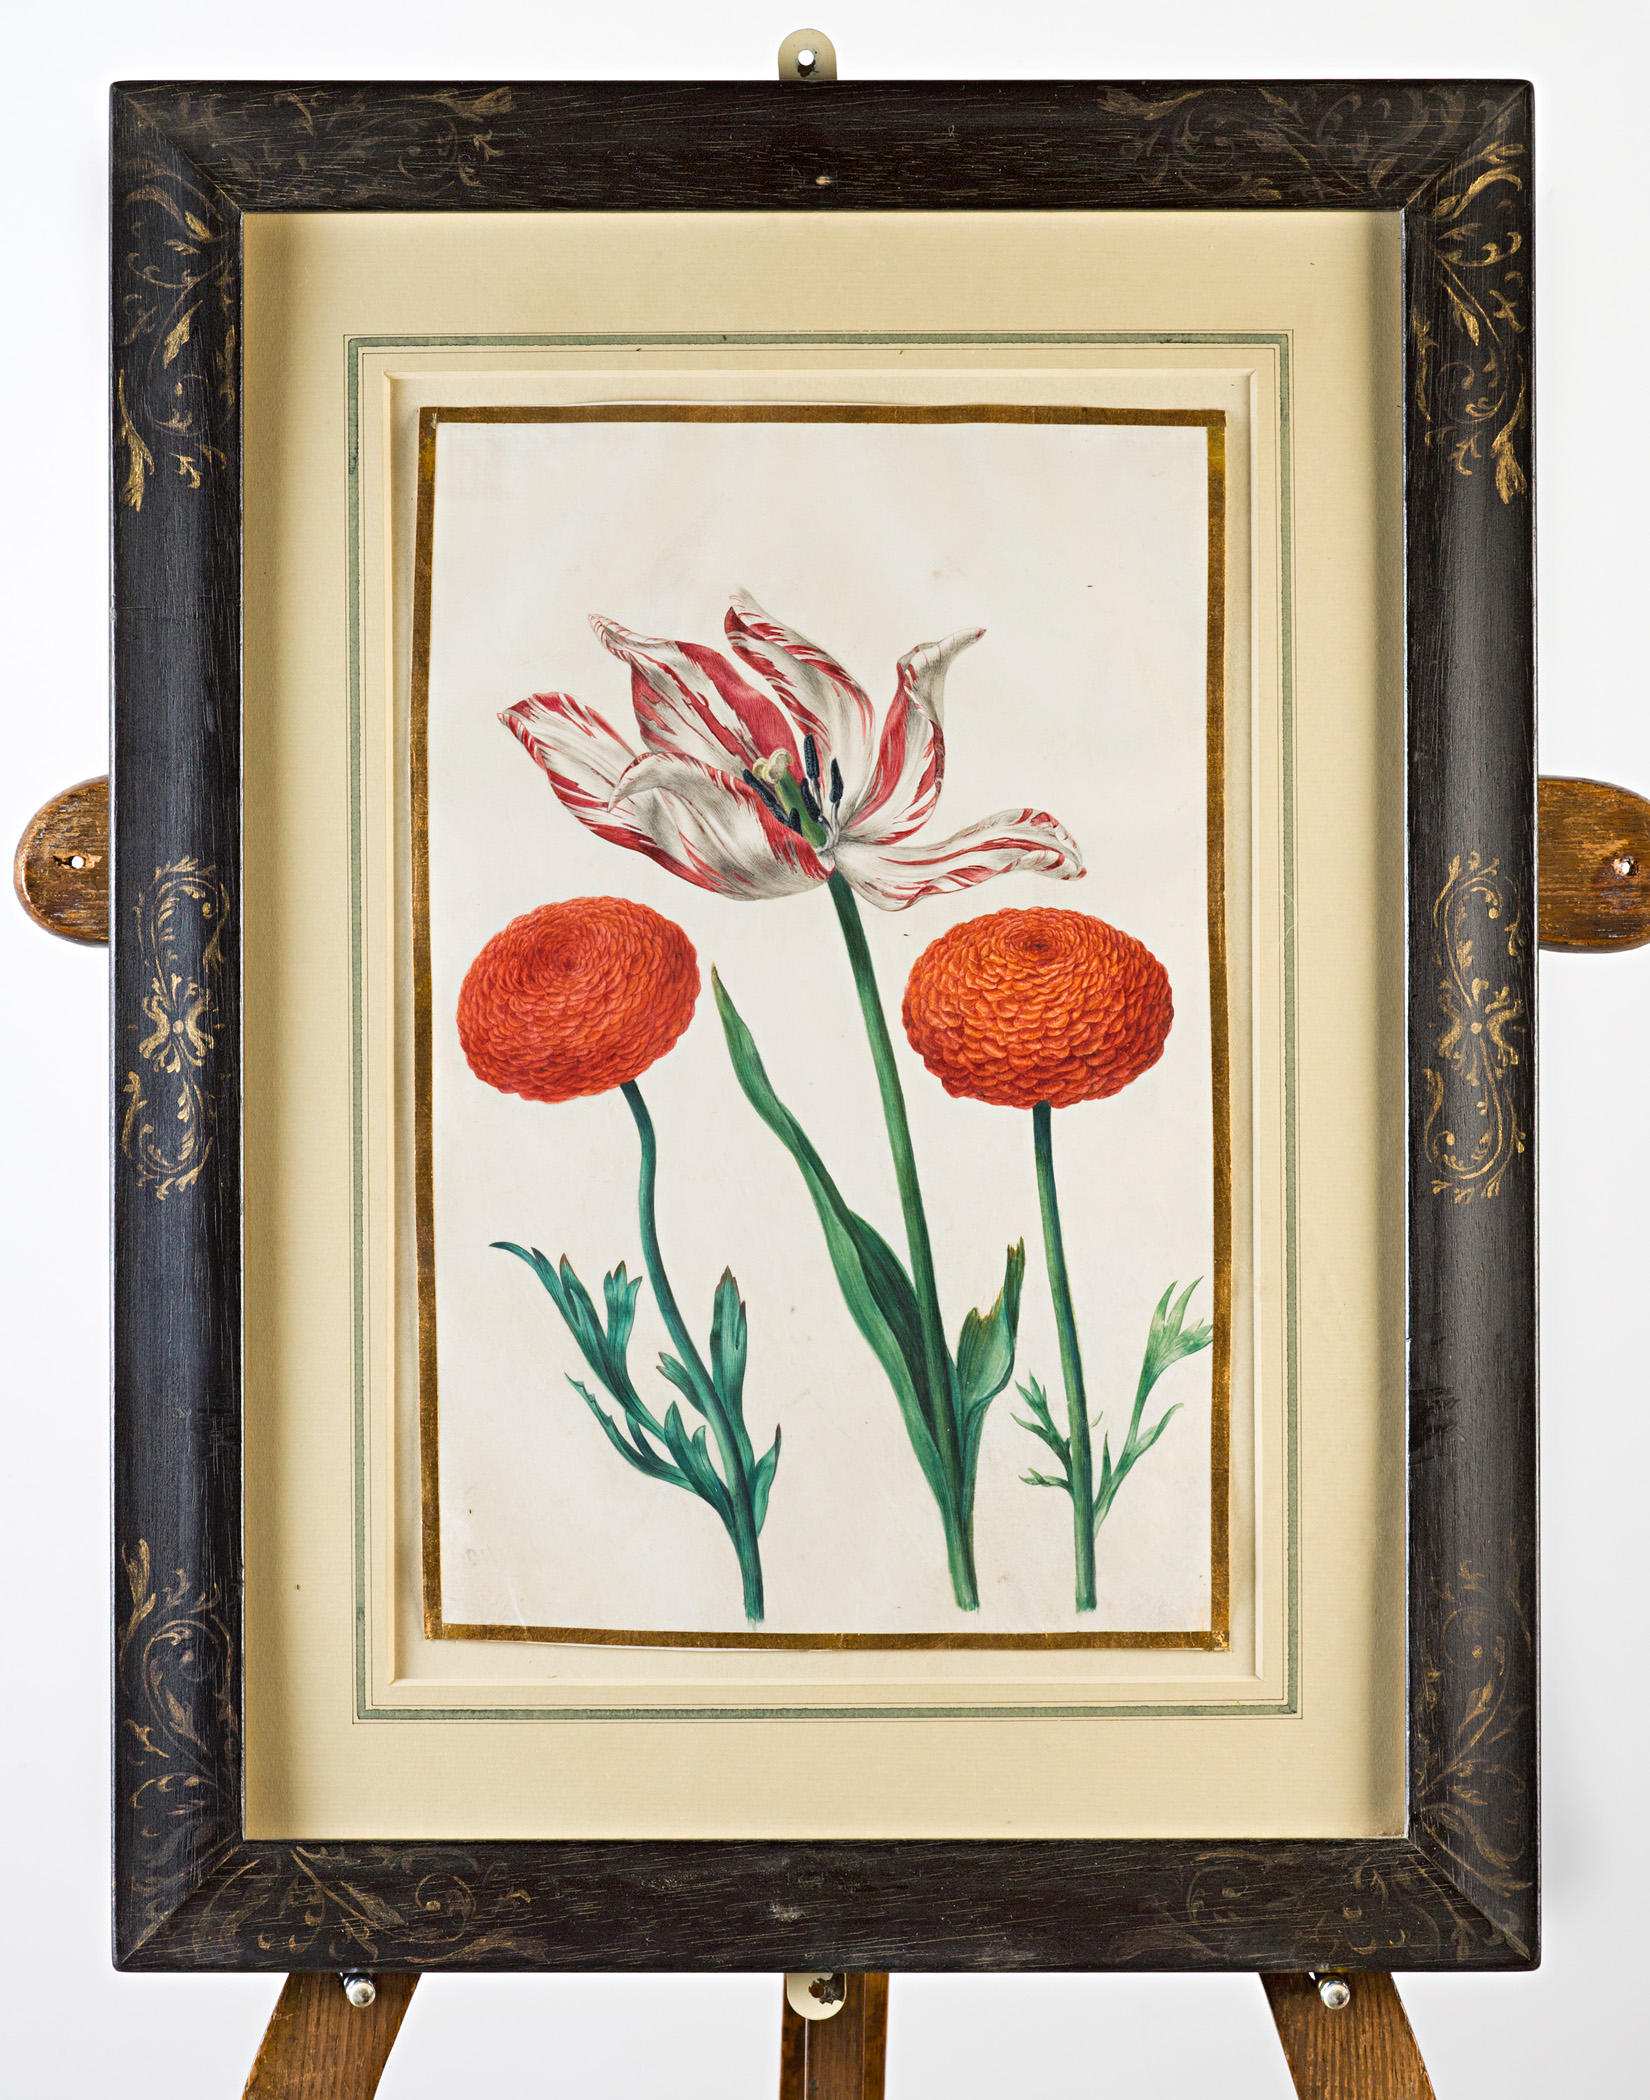 Tulip and zinnias, Attributed to Claude Aubriet (c.1665-1742).